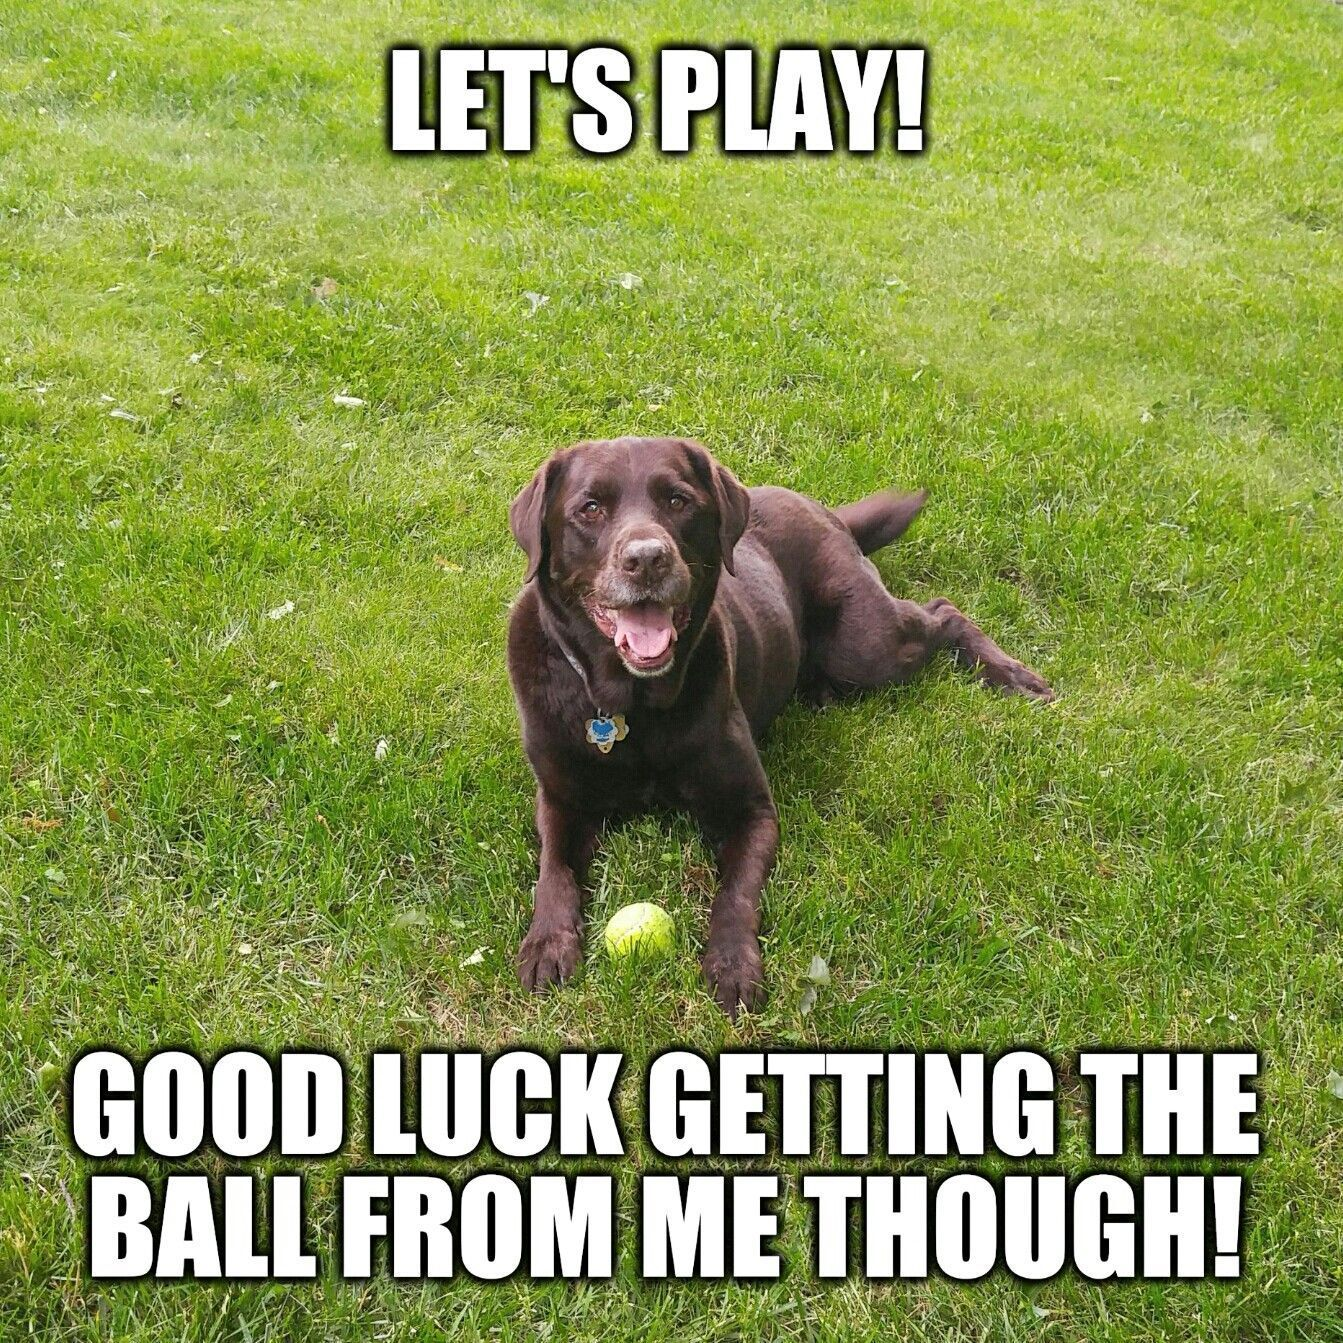 Let's play! Good luck getting the ball from me thought!